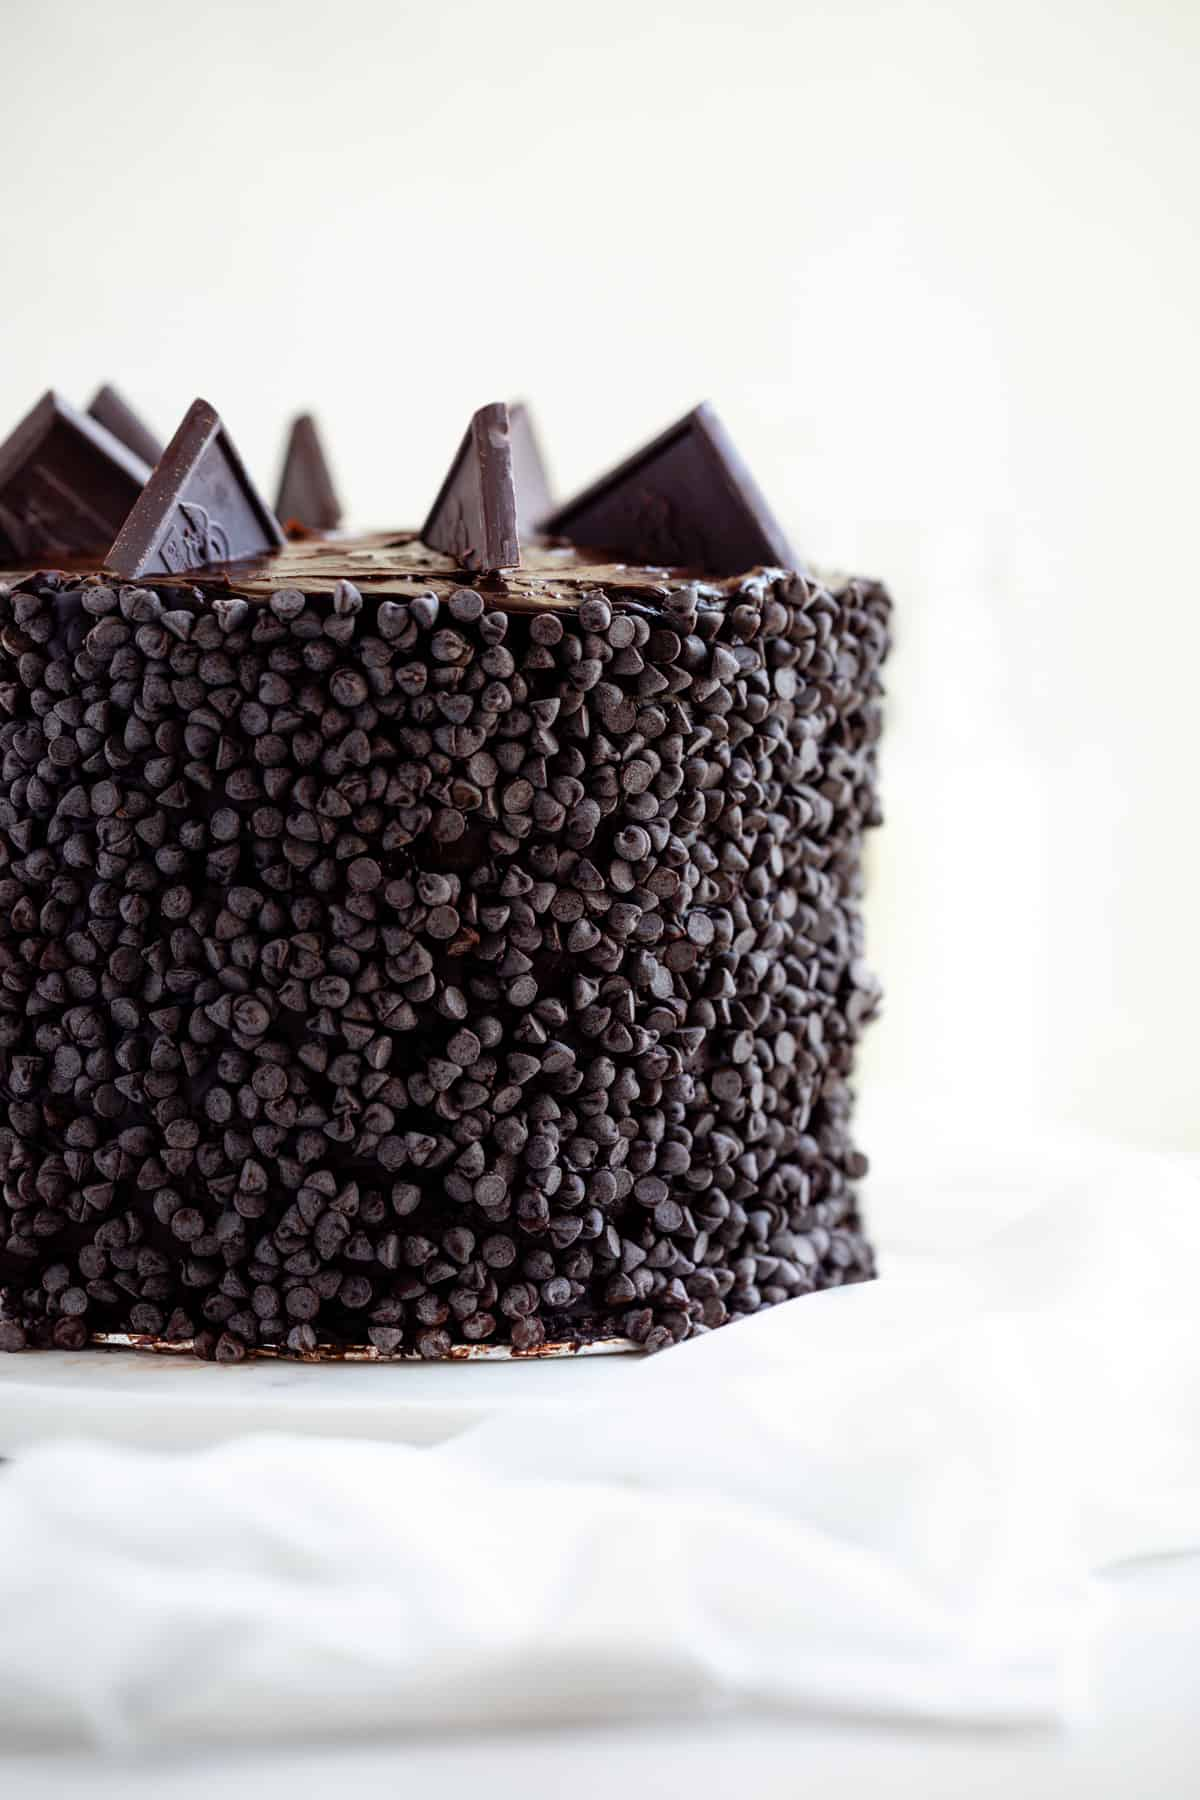 cake covered in mini chocolate chips on a cake board